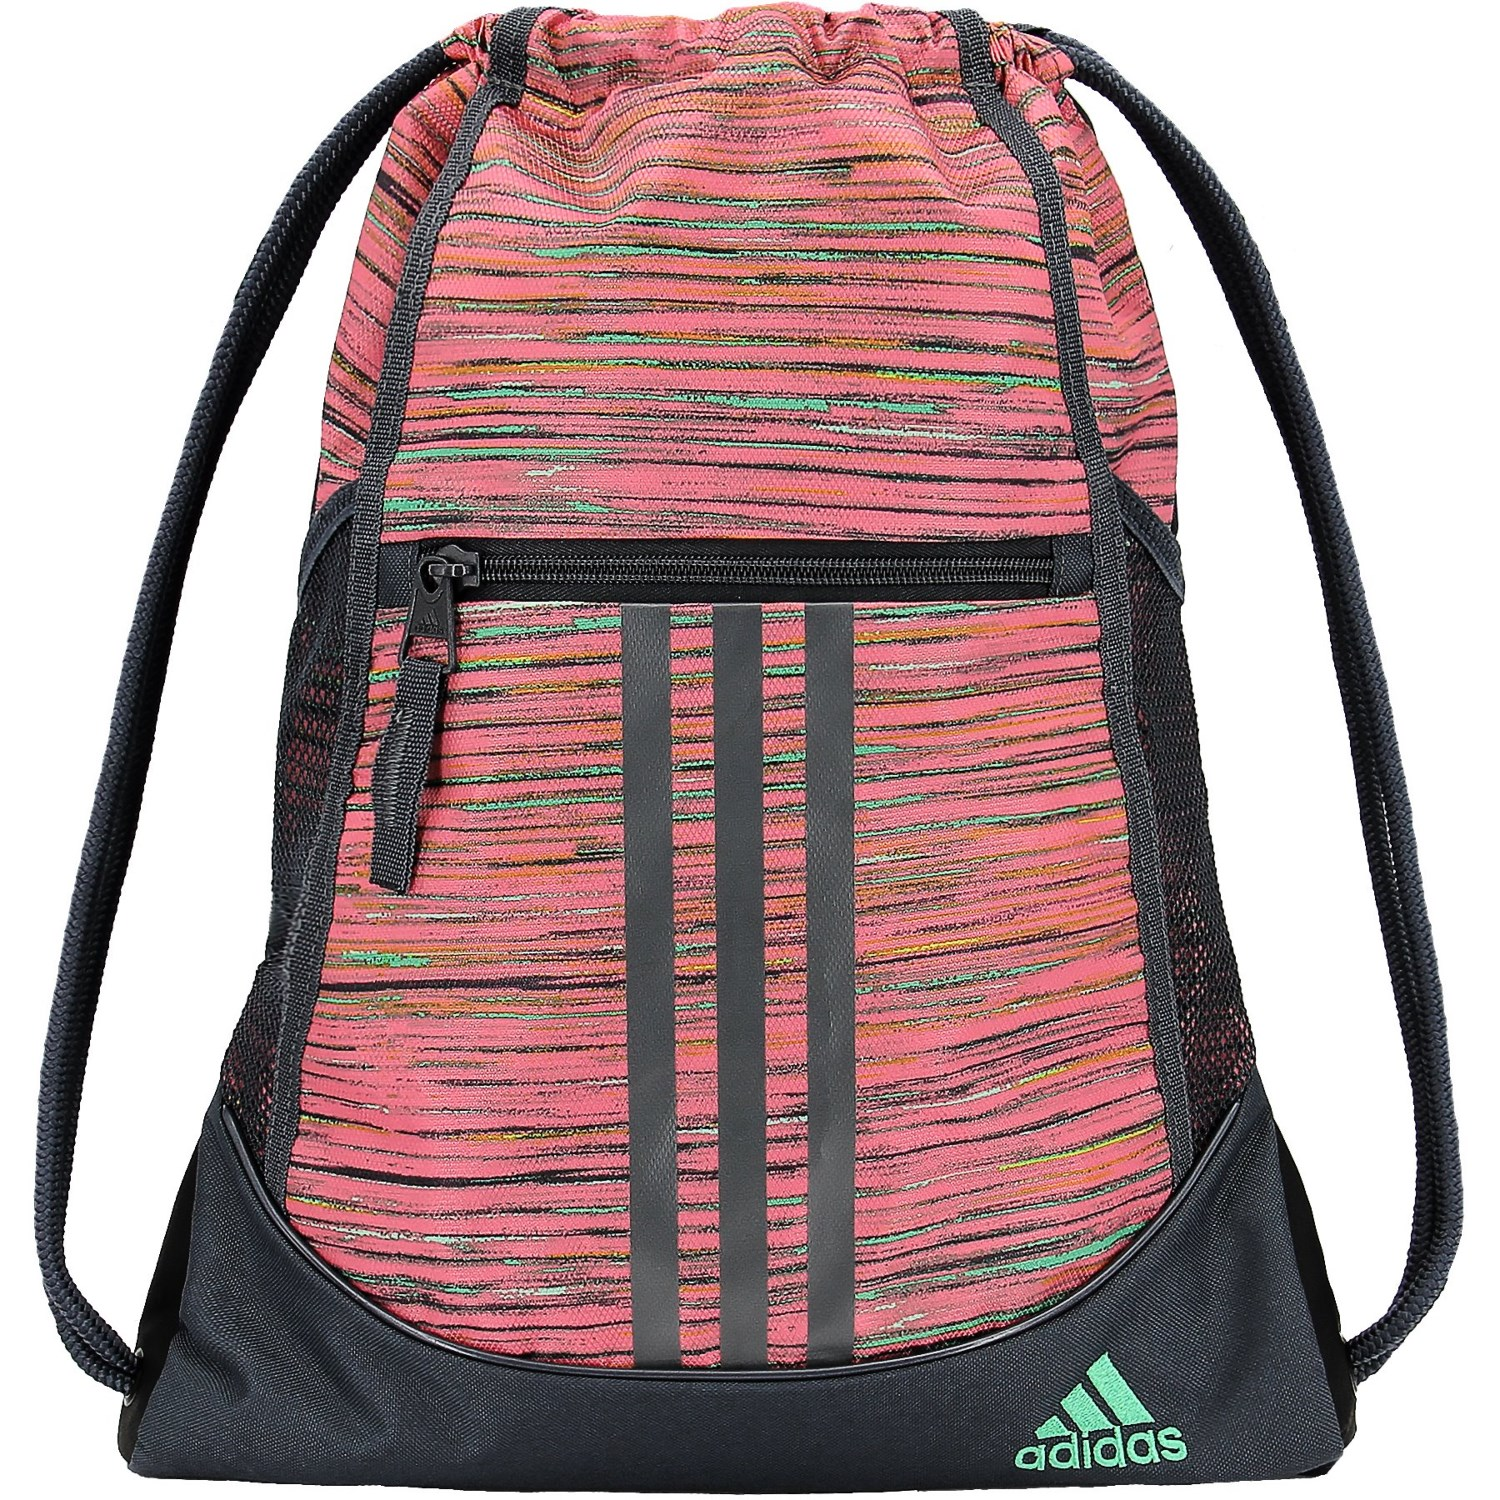 adidas Alliance II Sackpack - Save 44% 7245cd0ef9548